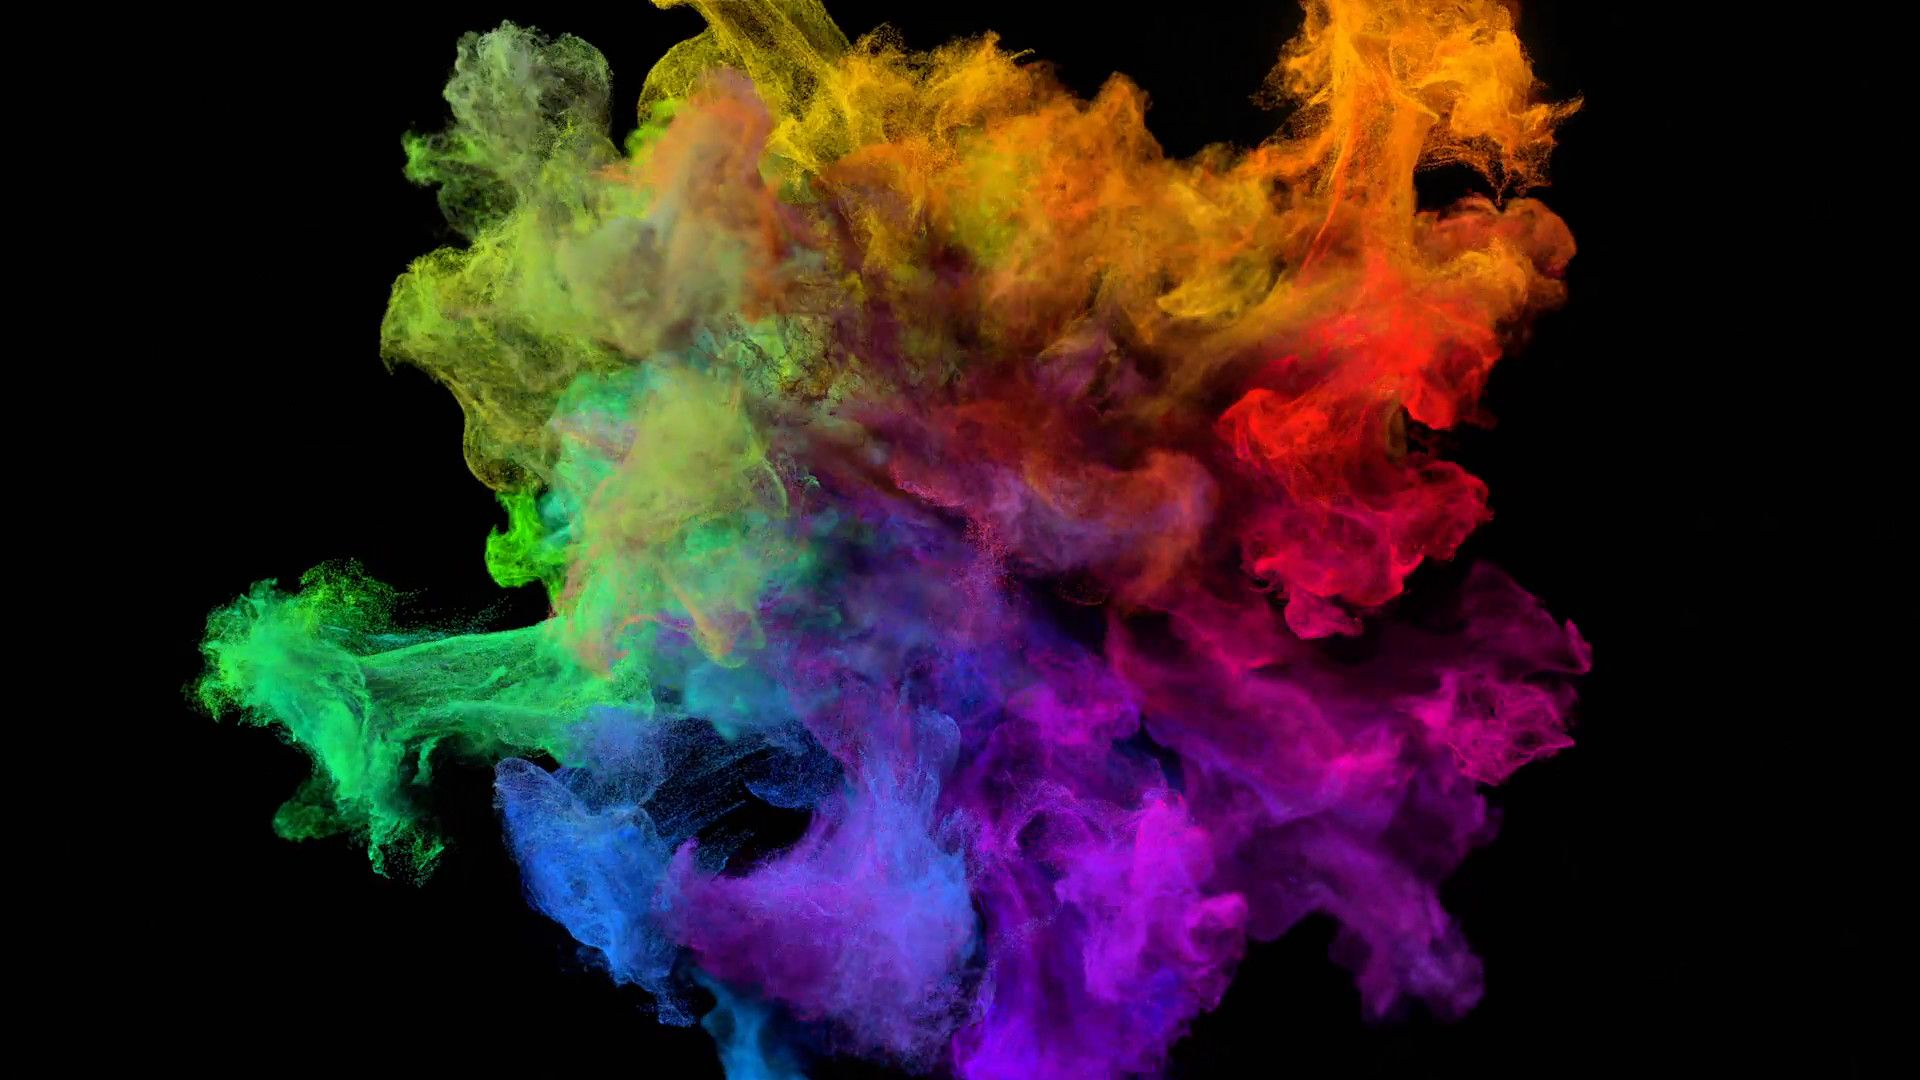 Res 1920x1080 Color Explosion On Black Spectrum With Alpha Matte Full Hd Motion Background In 2020 Black Background Wallpaper Black Backgrounds Abstract Images